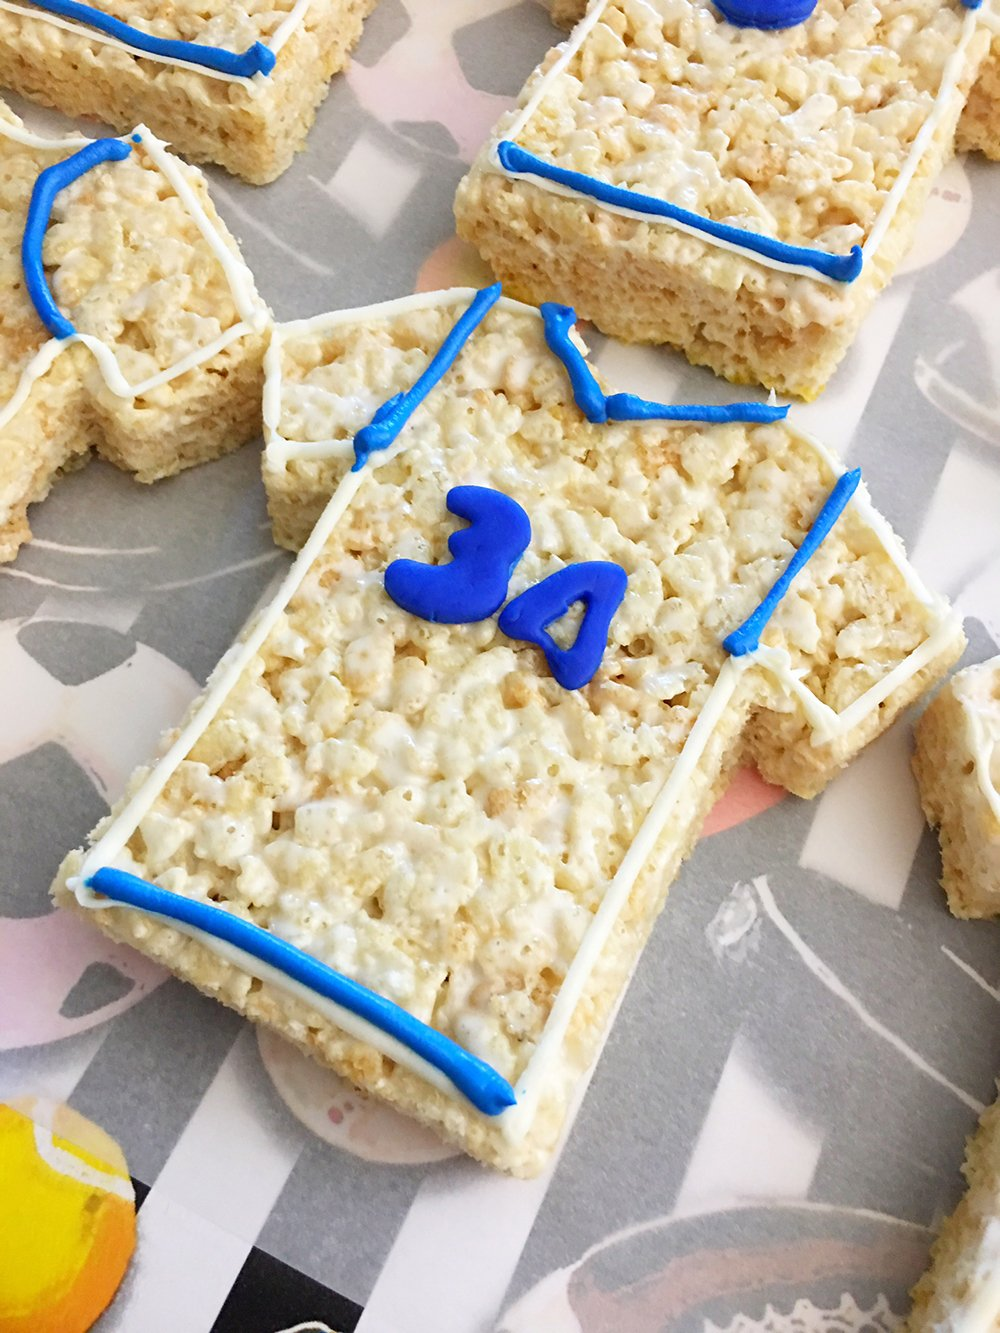 Sports Jersey Rice Krispies Treats are the perfect dessert or snack for a game day party. They're as much fun to make as they are to eat-draw details on the jerseys using blue frosting